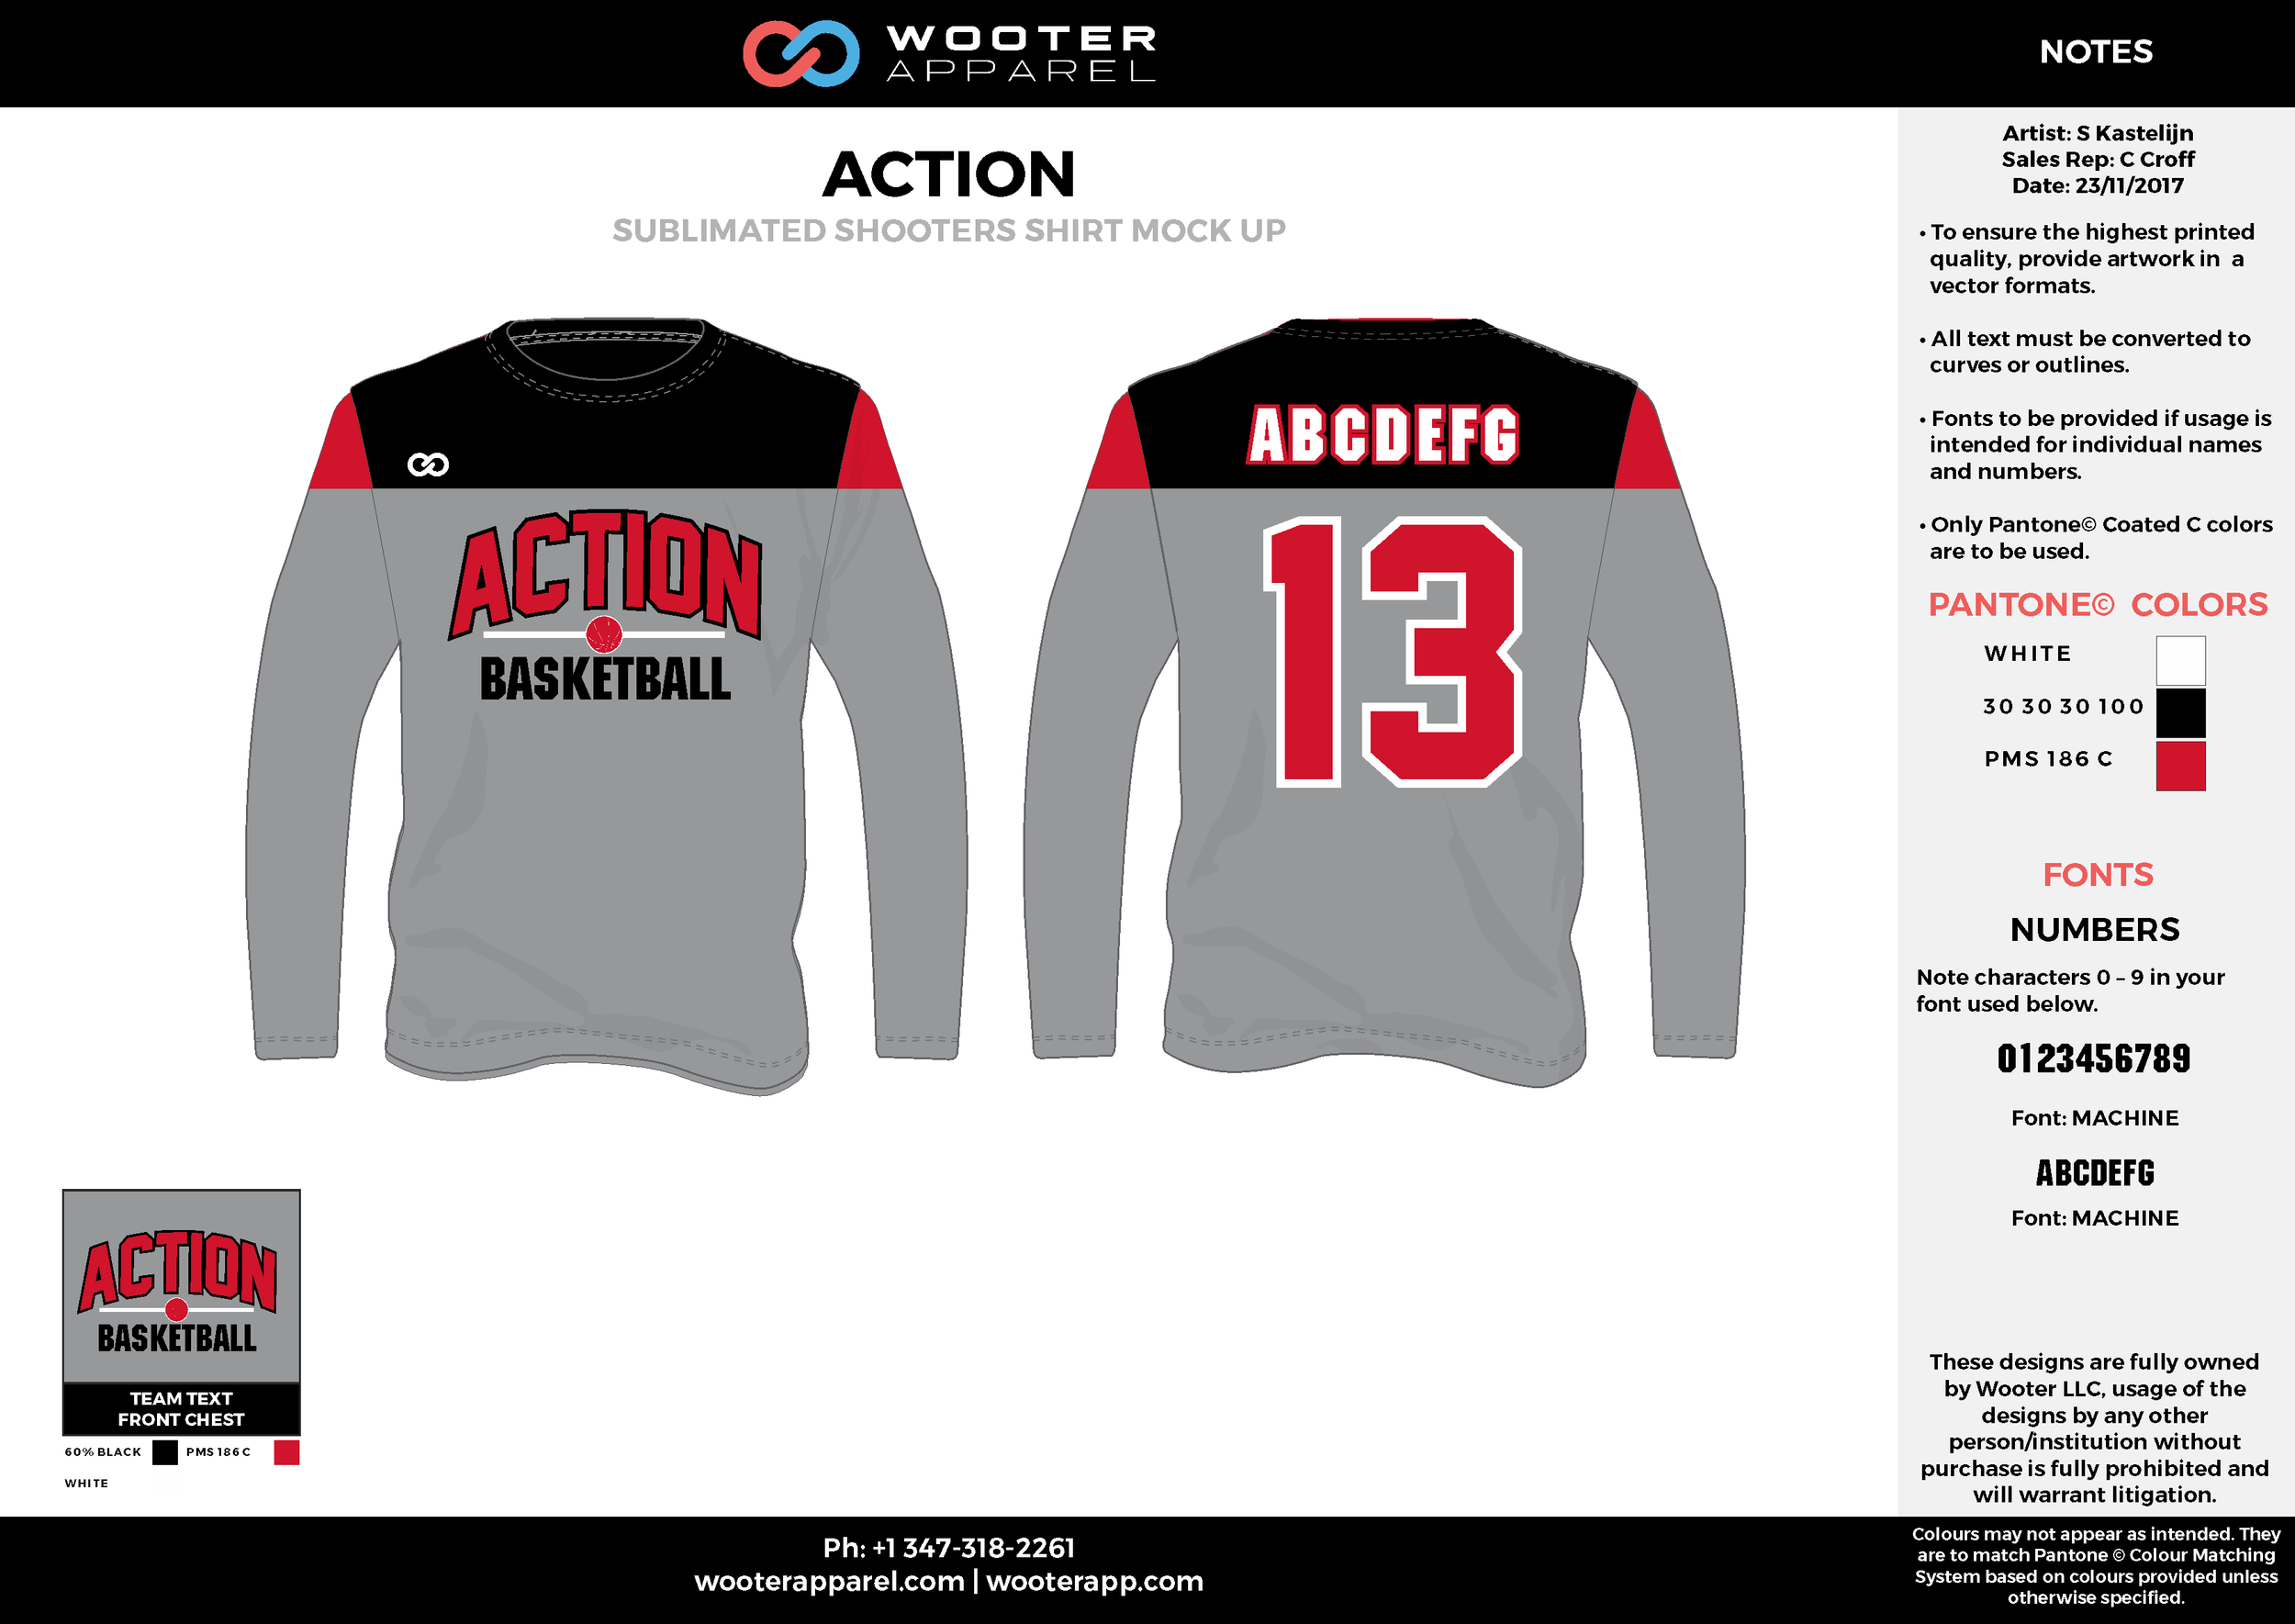 ACTION cool gray red black white custom design t-shirts